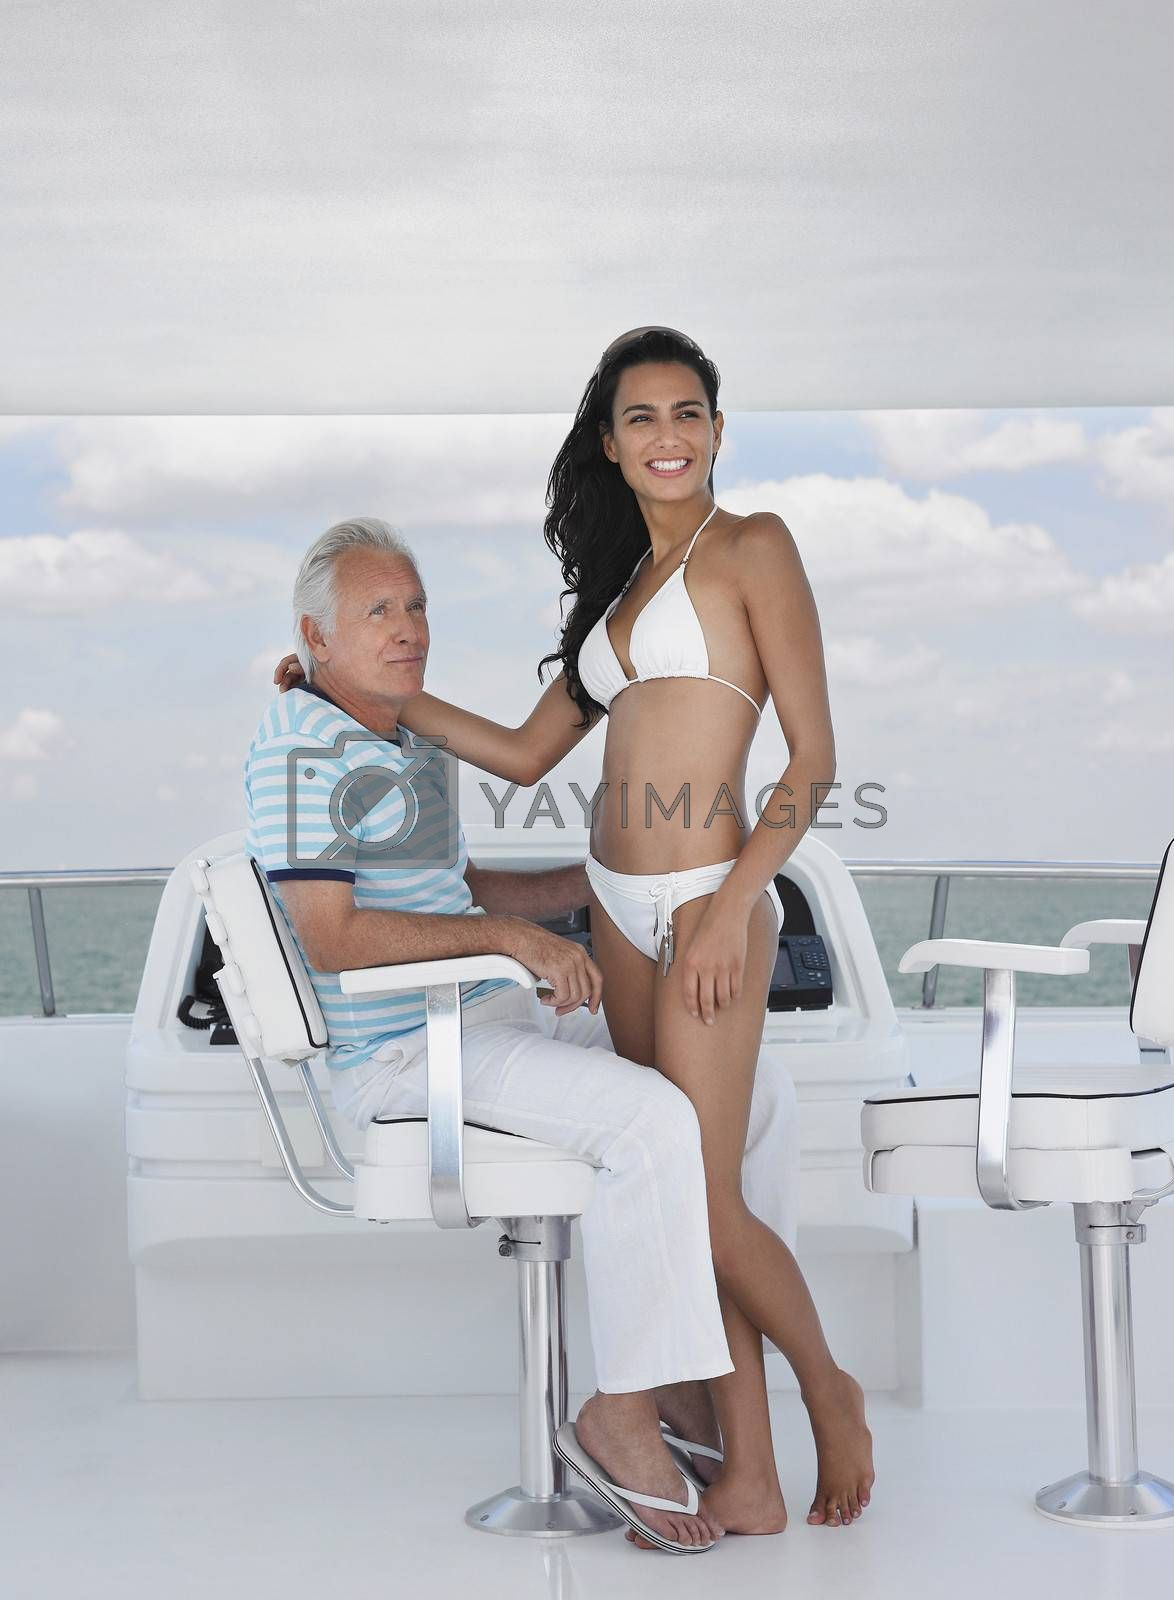 Woman Romancing With Man At Helm Of Yacht